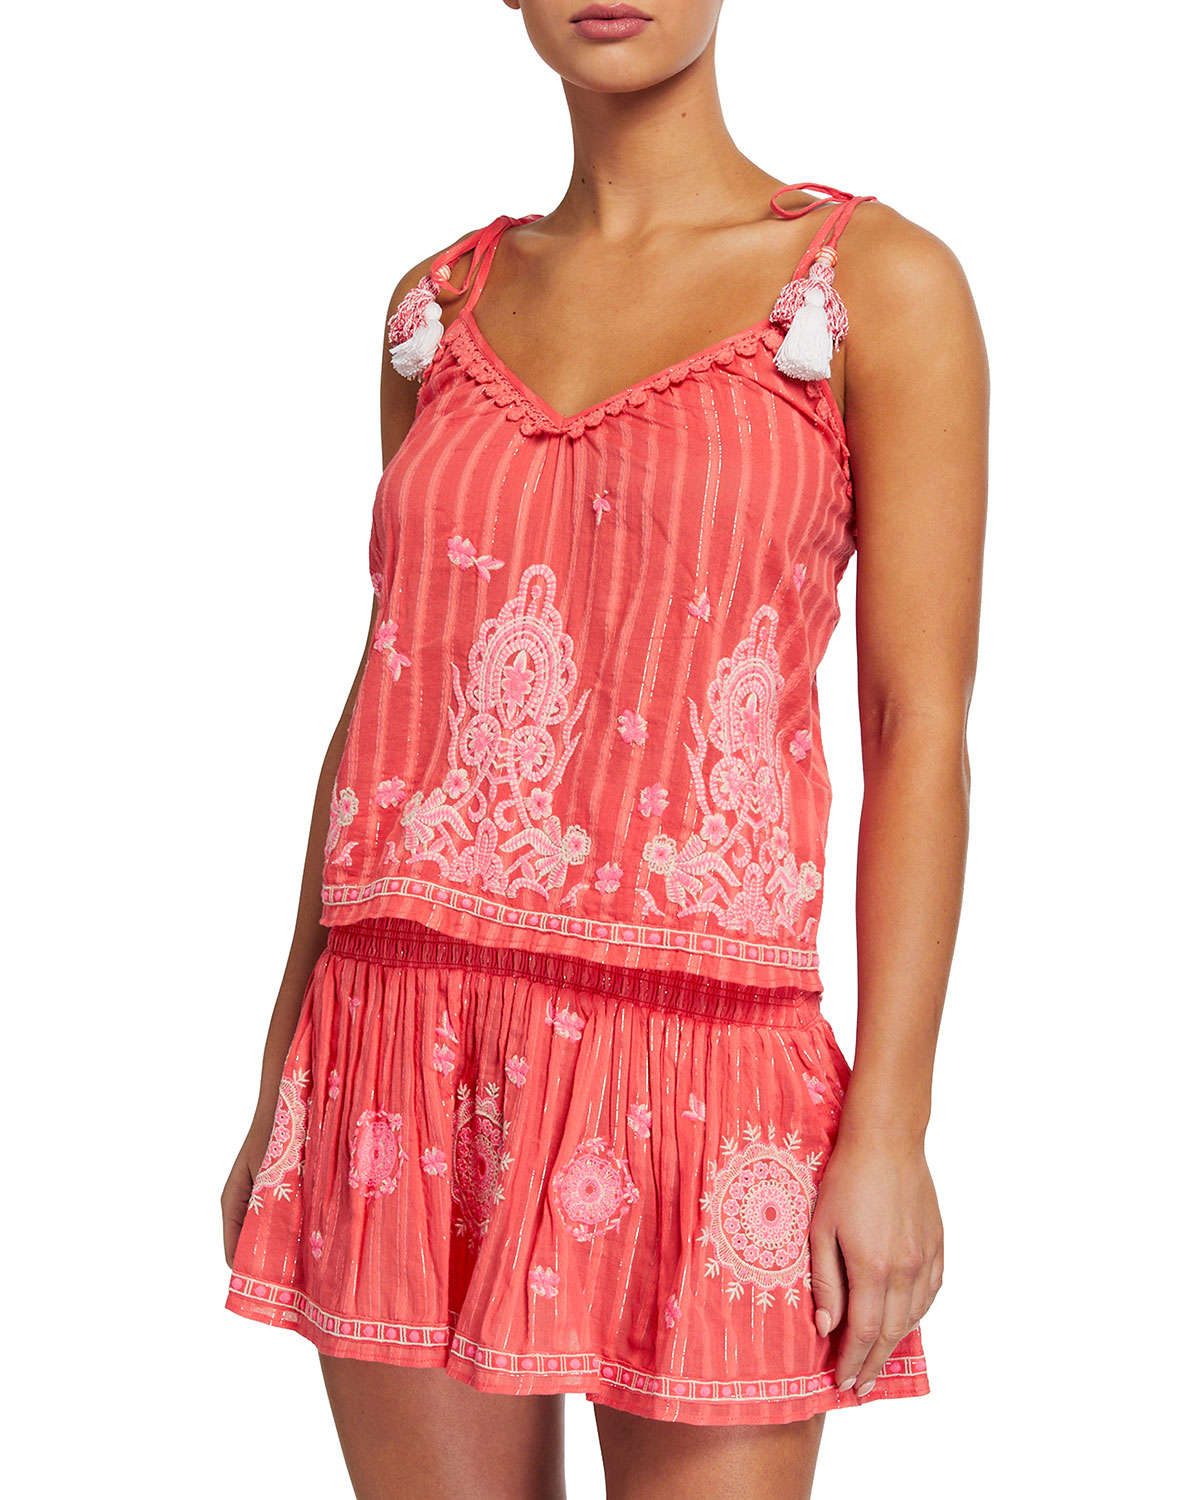 Ramy Brook Marco Woven Spaghetti-Strap Top